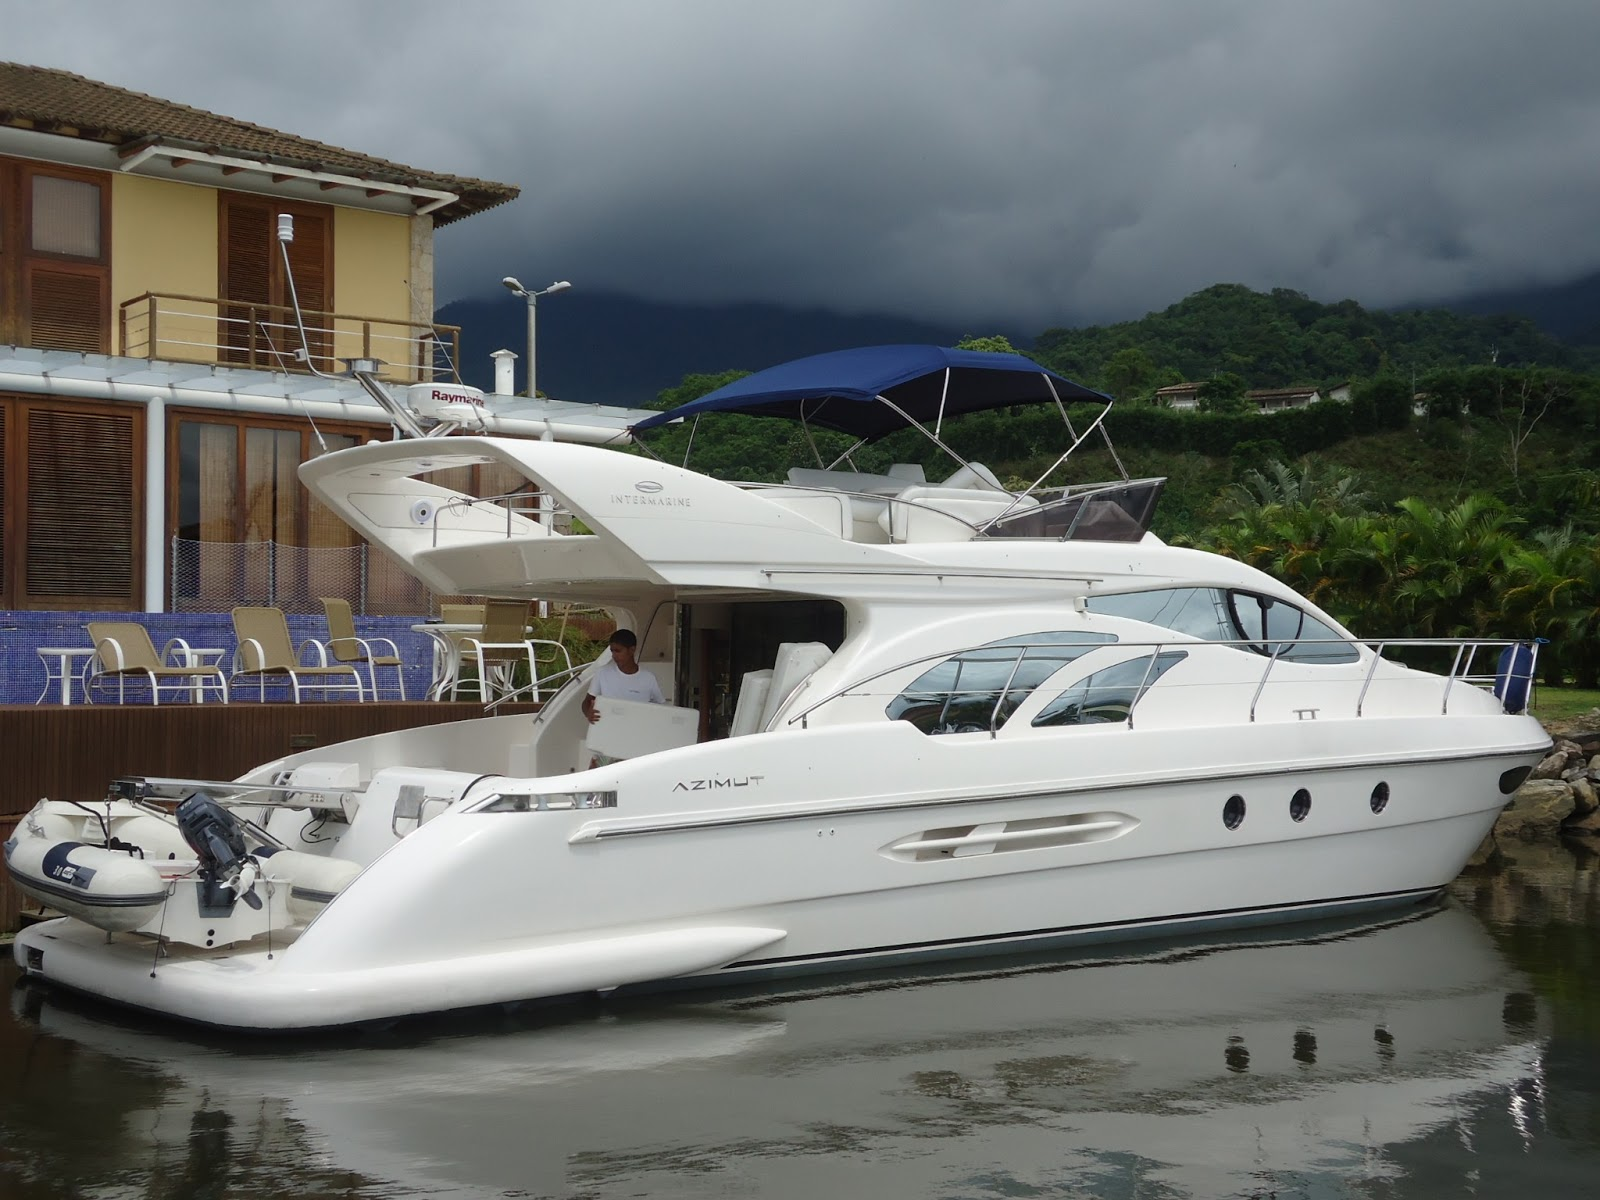 Intermarine Azimut 520 Full,Ano 2008